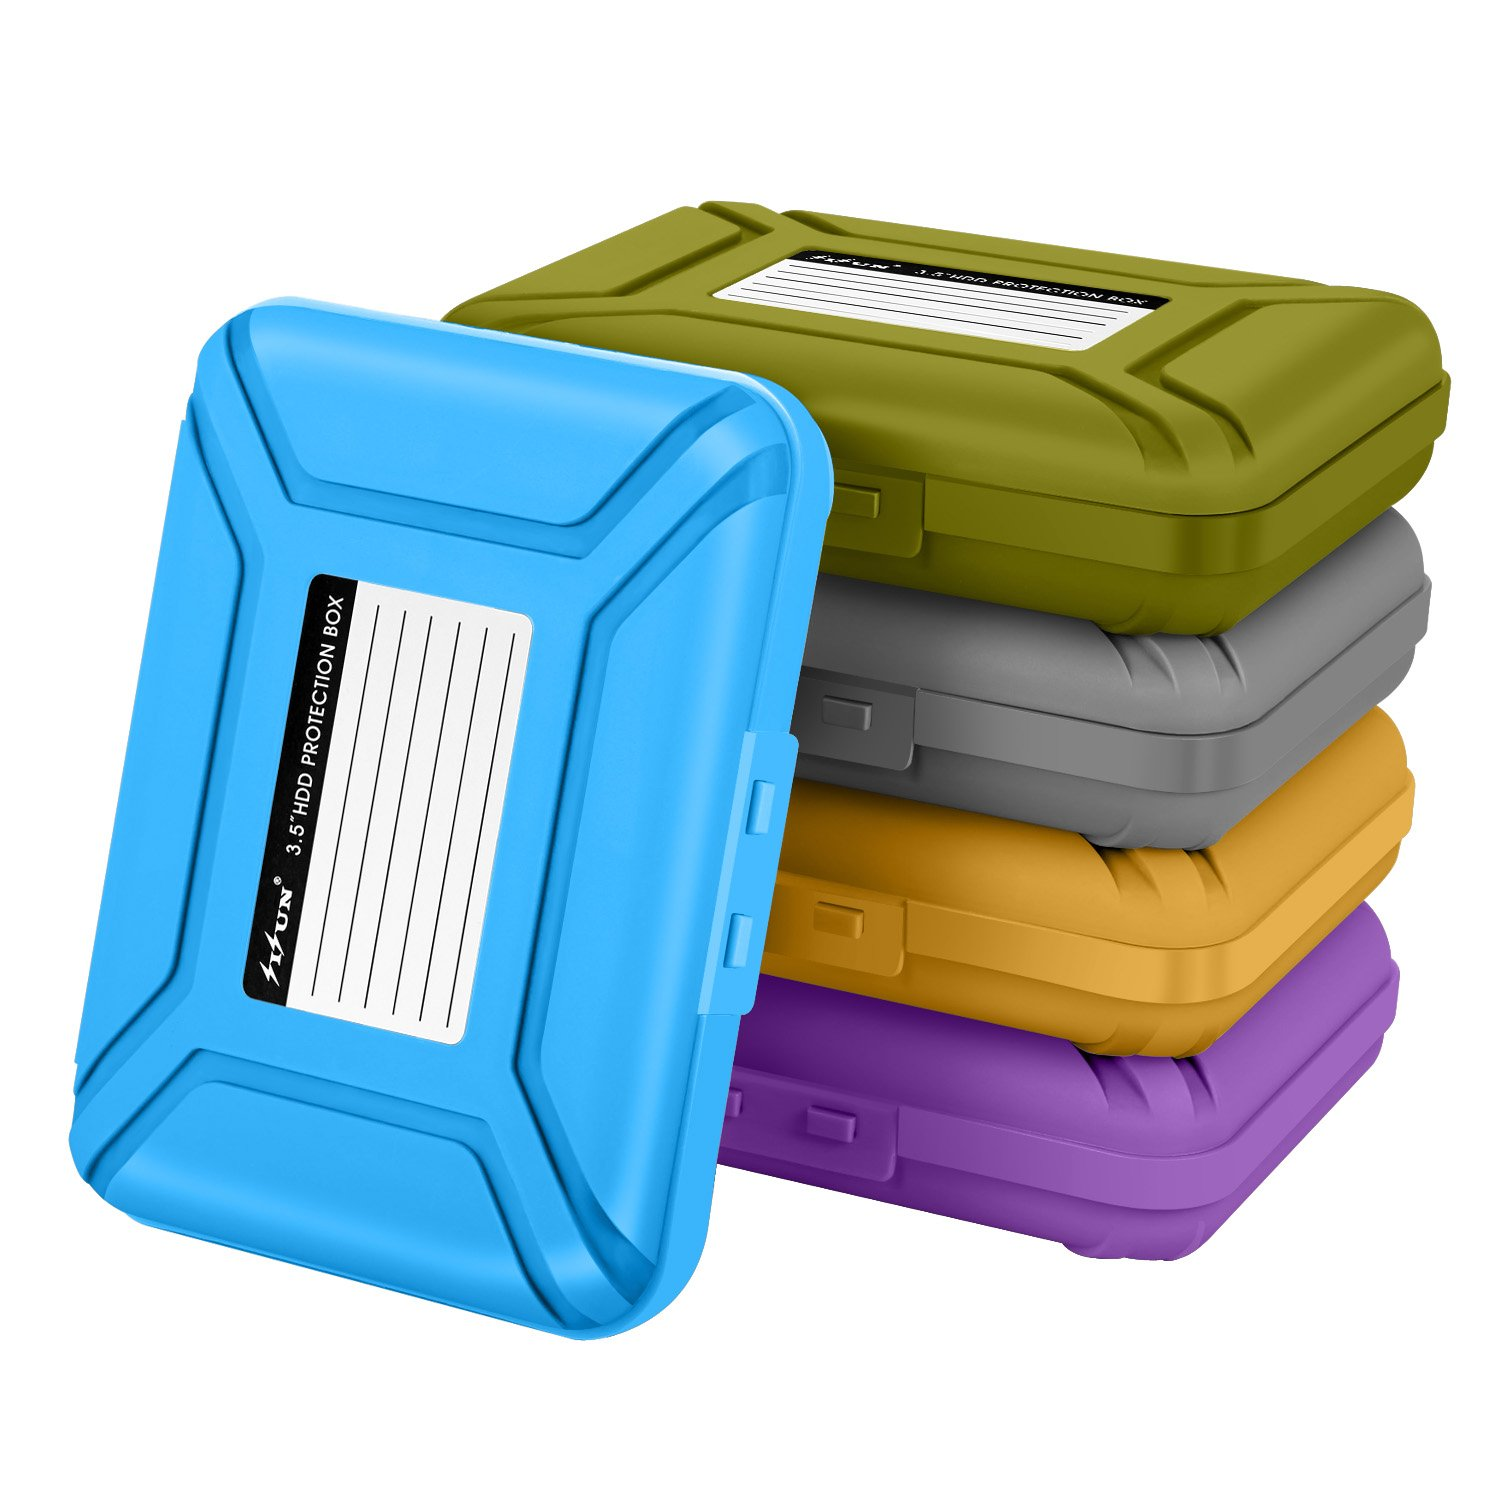 [5-Colors]SISUN 3.5 inch Anti-Static HDD Protector Case , 3.5 '' Hard Drive protective Case - HDD Storage Box Grey/Purple/Yellow/Blue/Green (Five Colors)